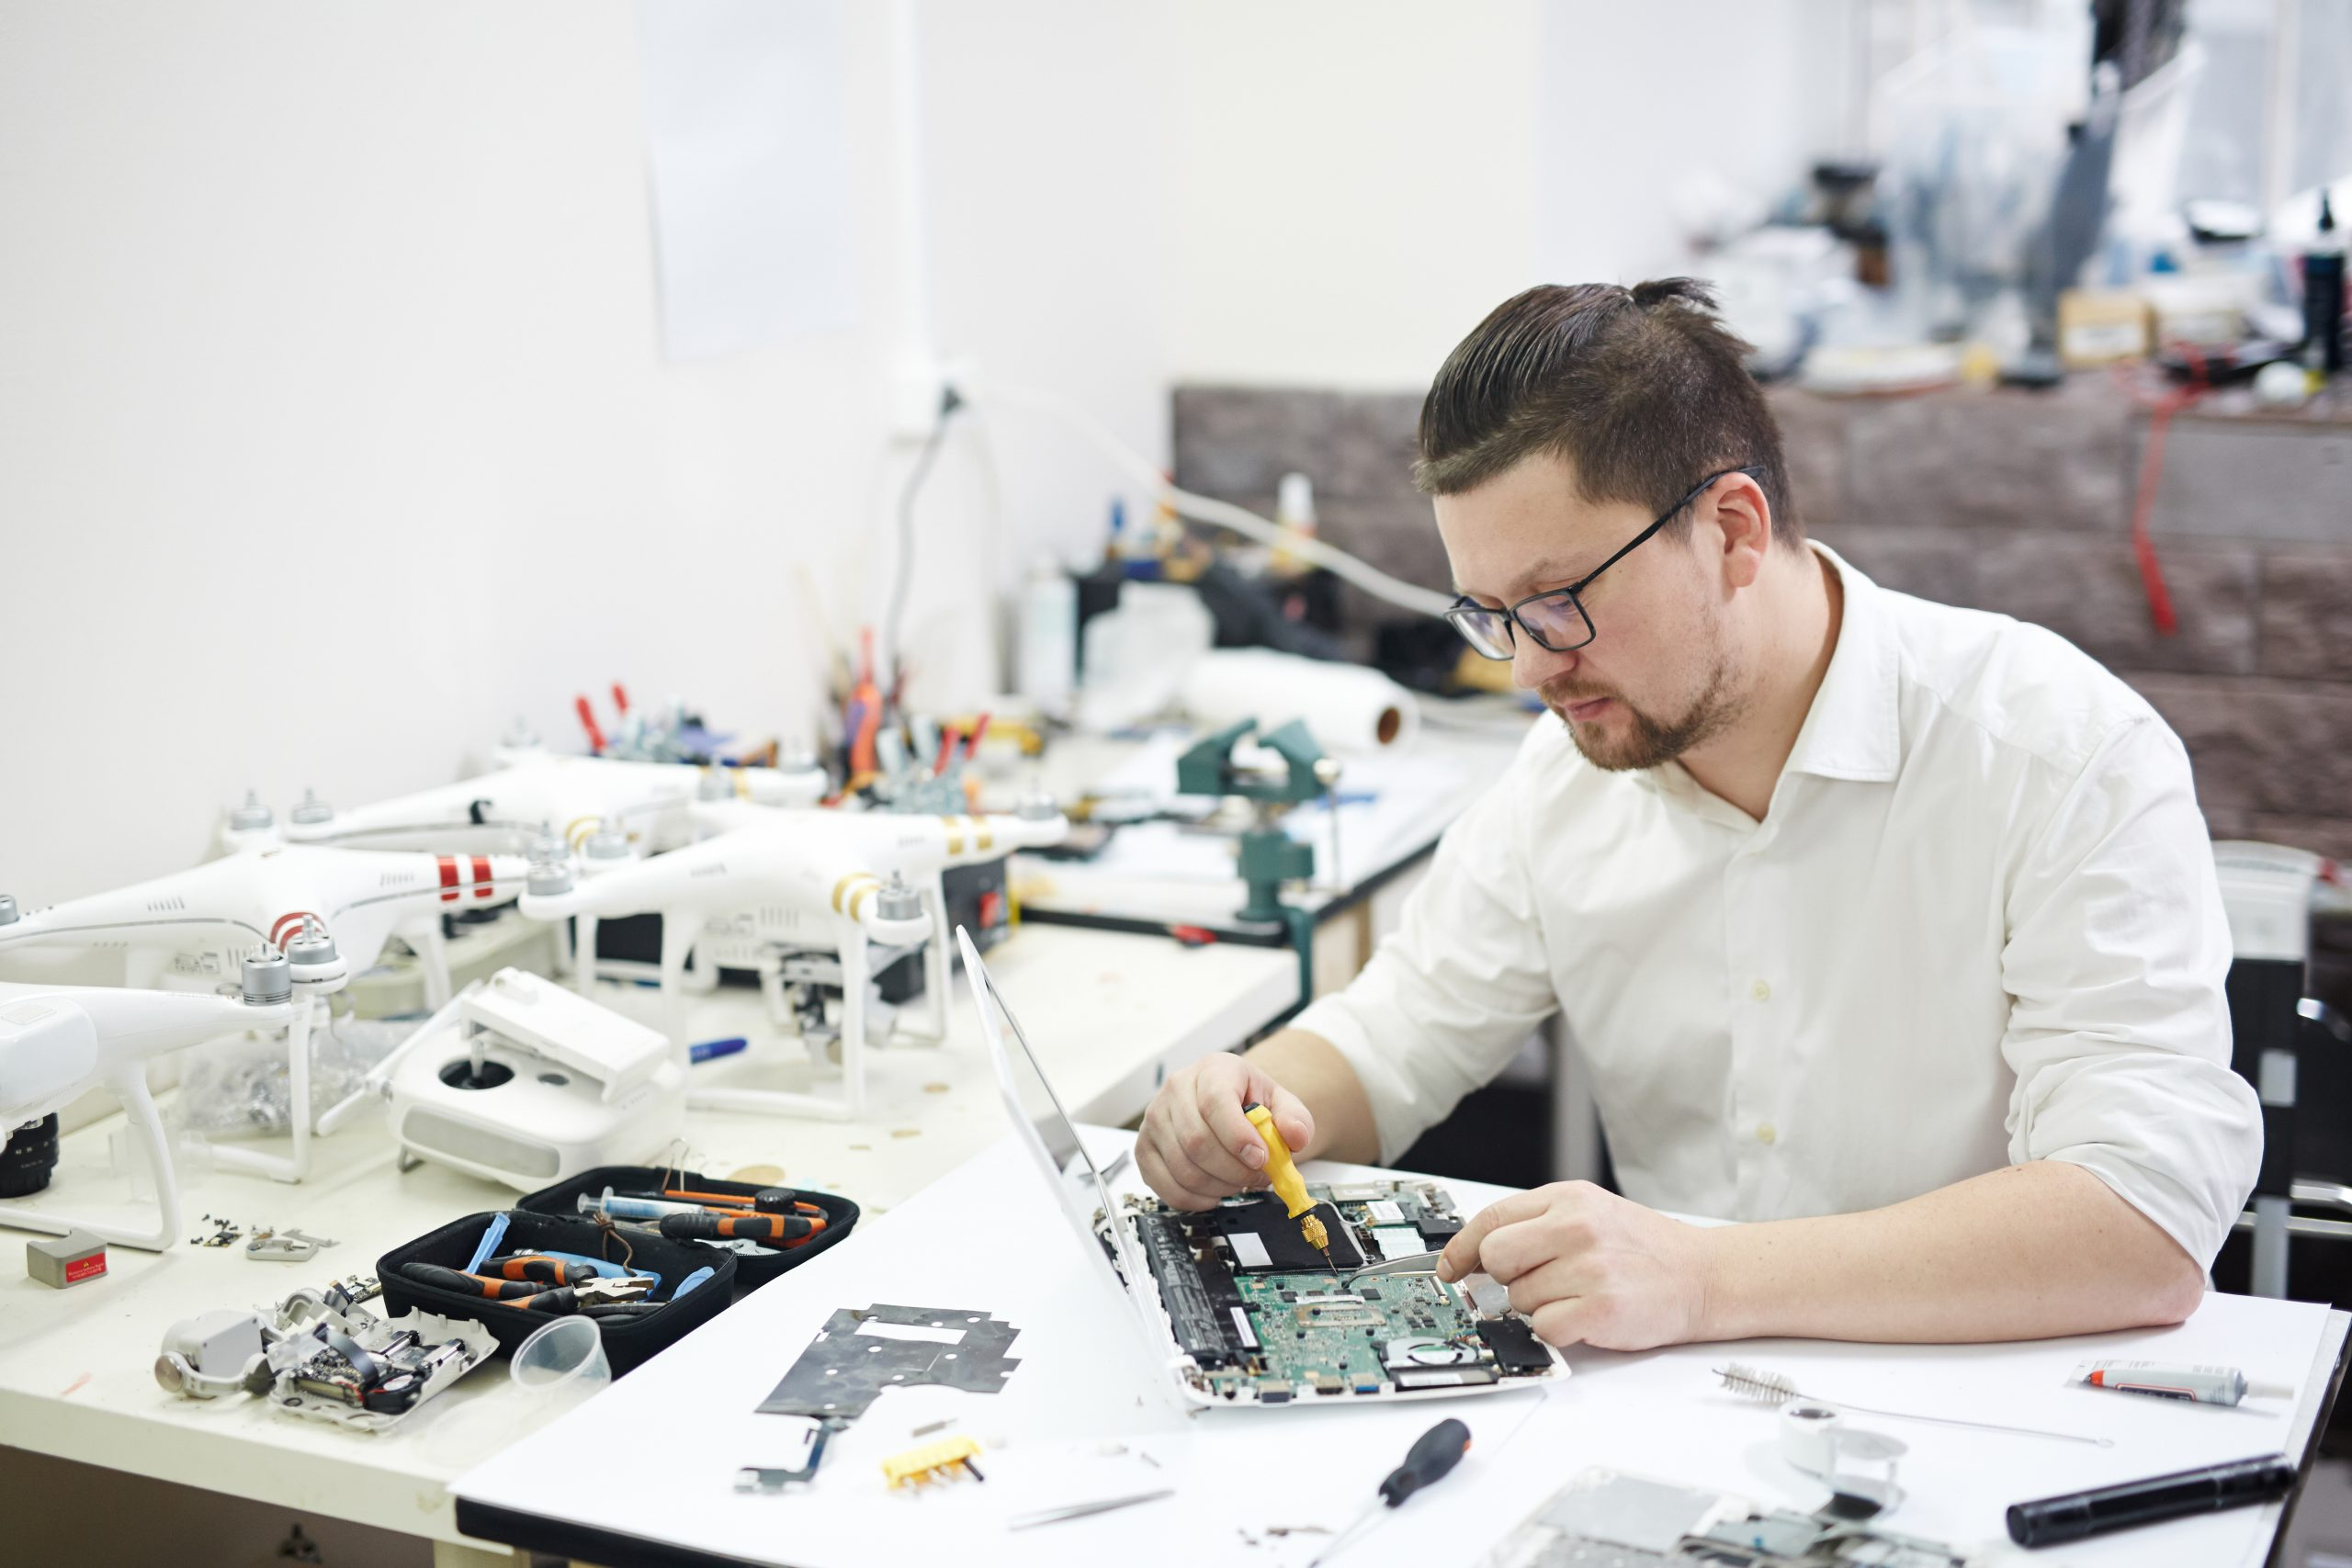 Portrait of modern man wearing glasses busy working with electronics in workshop: disassembling laptop and drones with different tools and electronic devices on table Keywords: